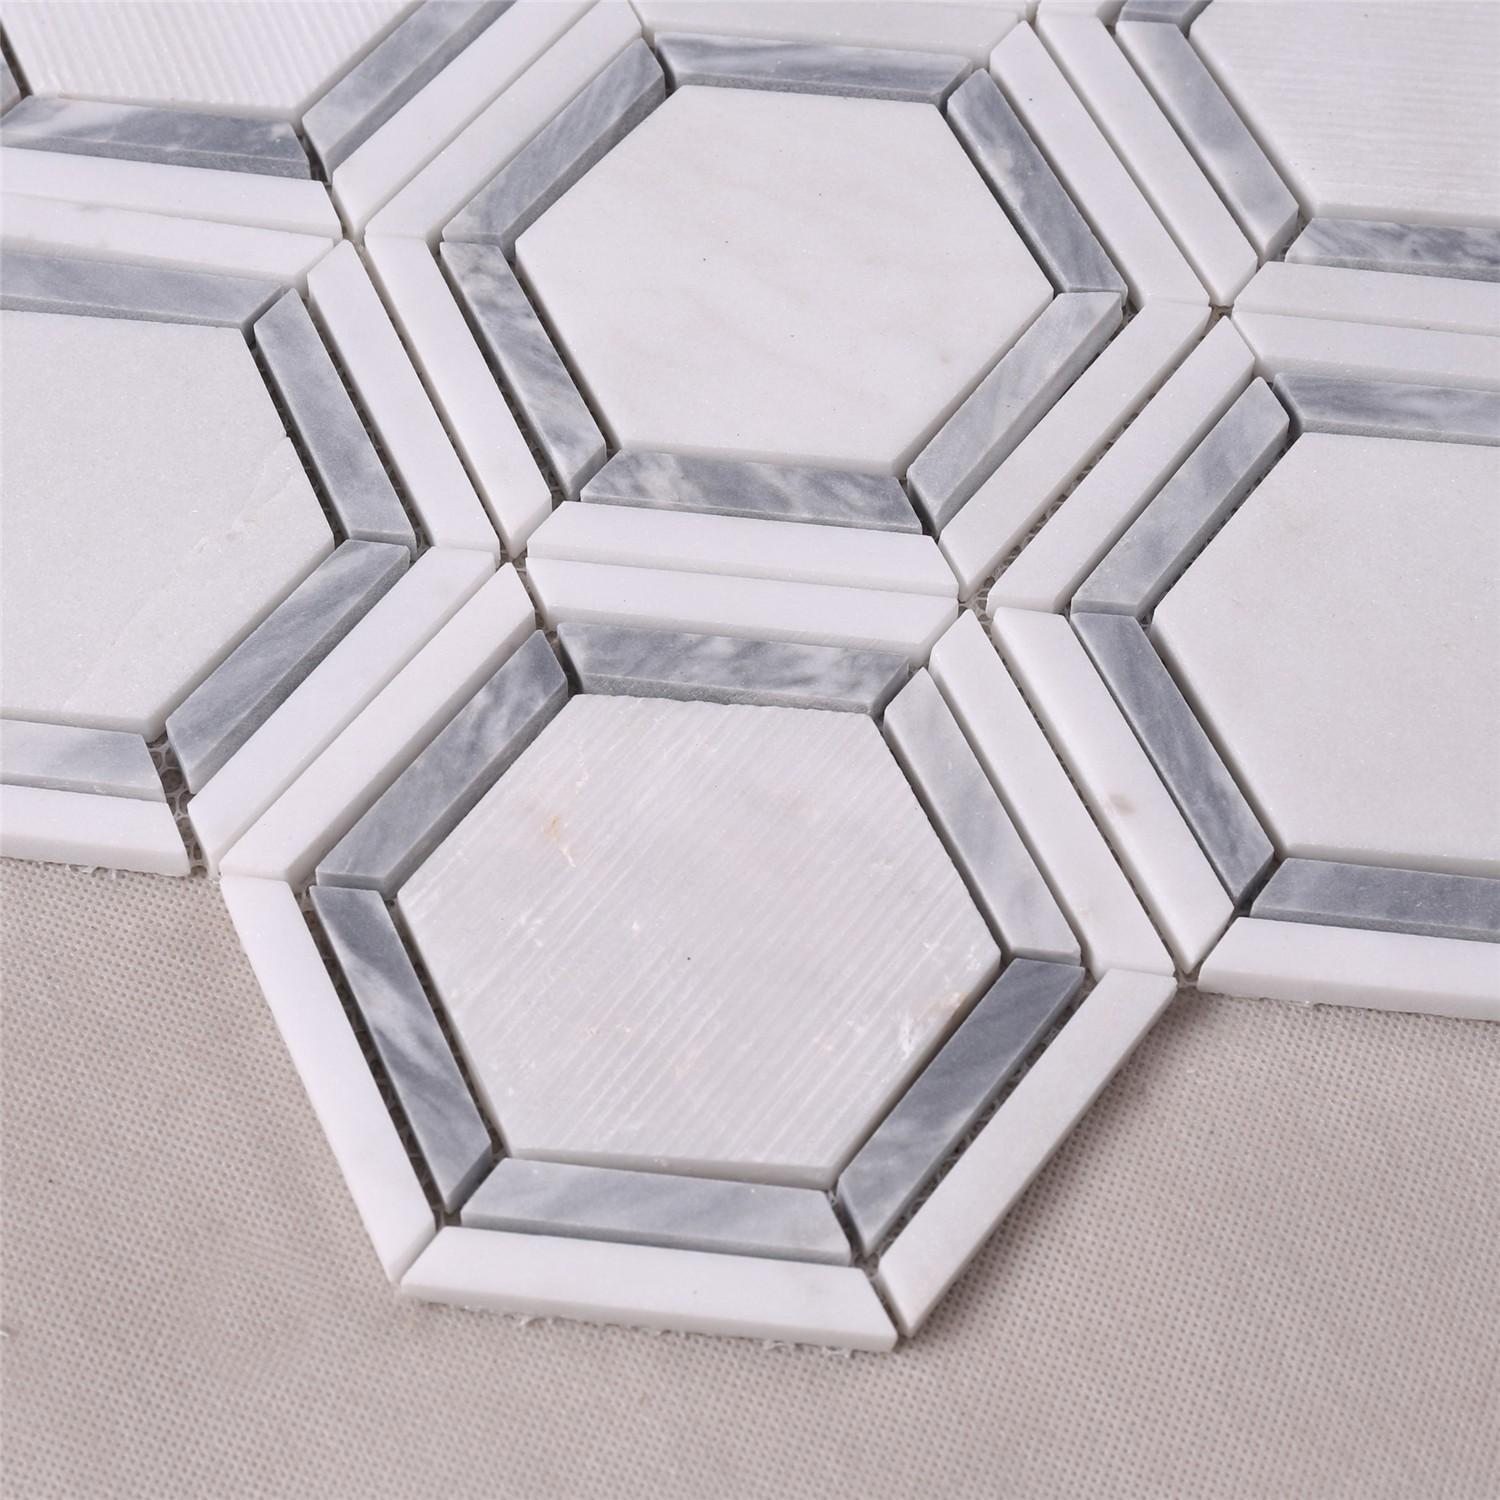 reliable crystal glass mosaic tiles suppliers white series for villa-3